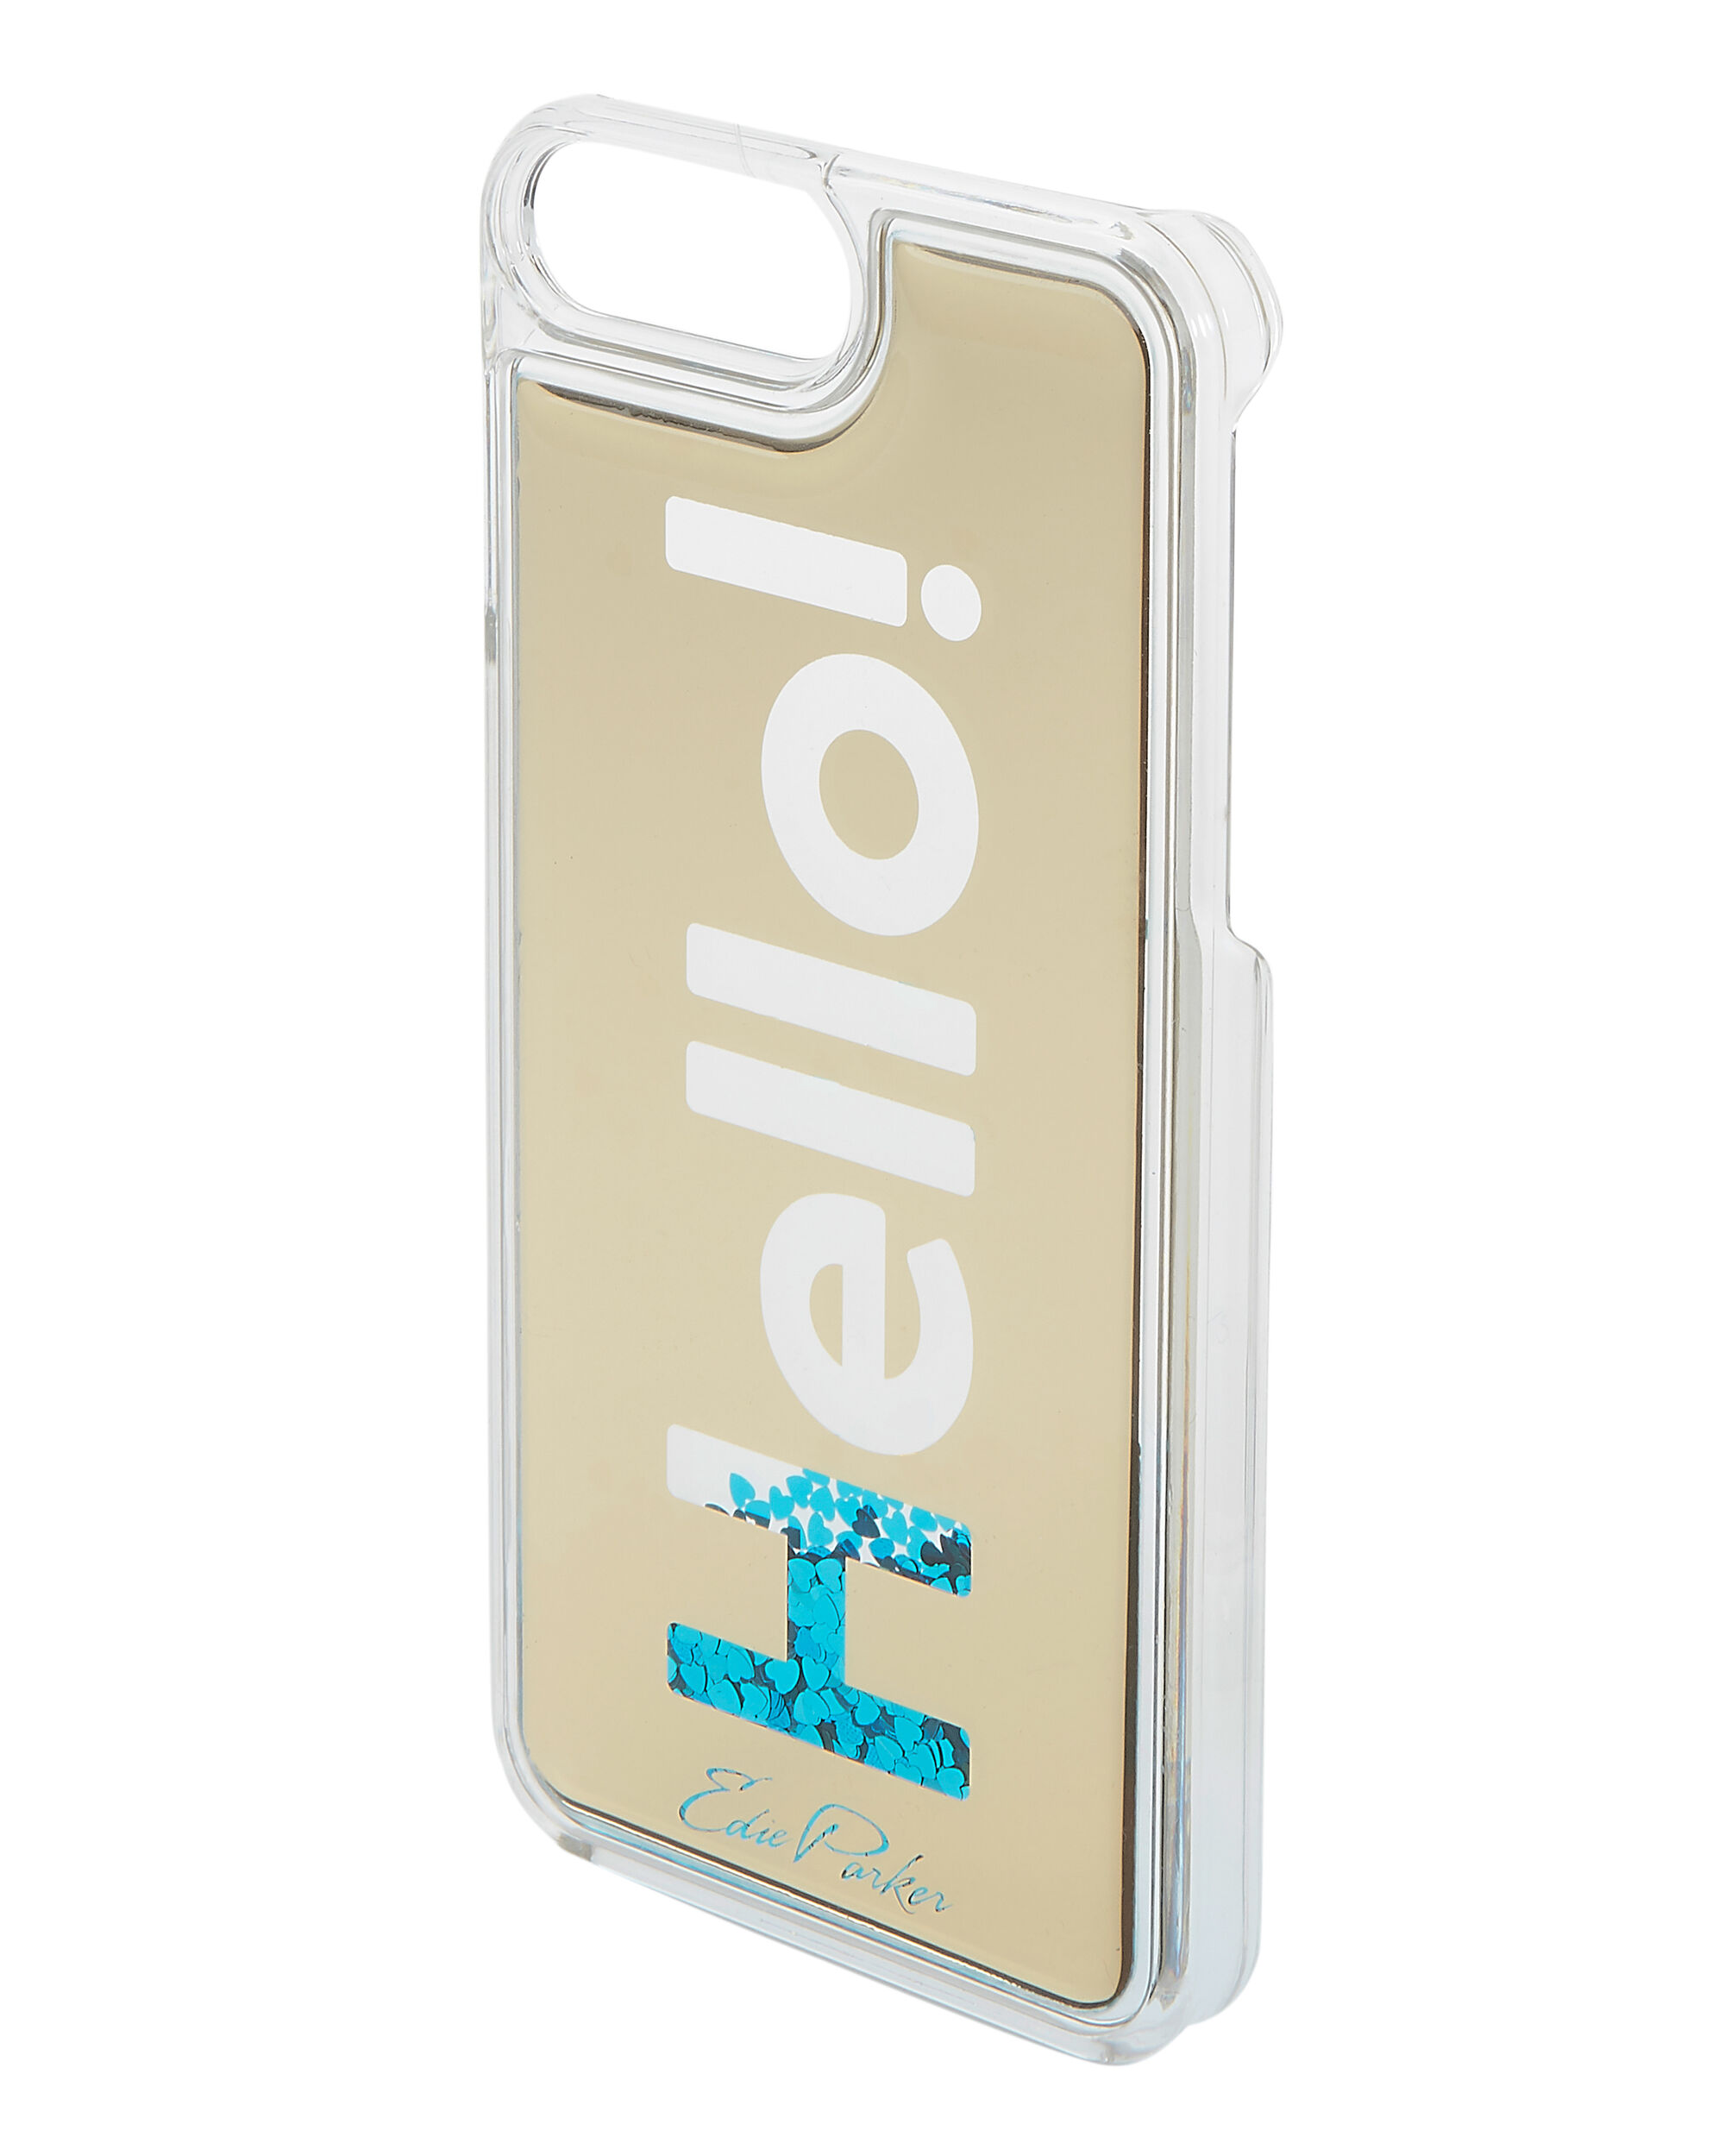 Blue Floating Hello iPhone 6 or 7 Case, METALLIC, hi-res